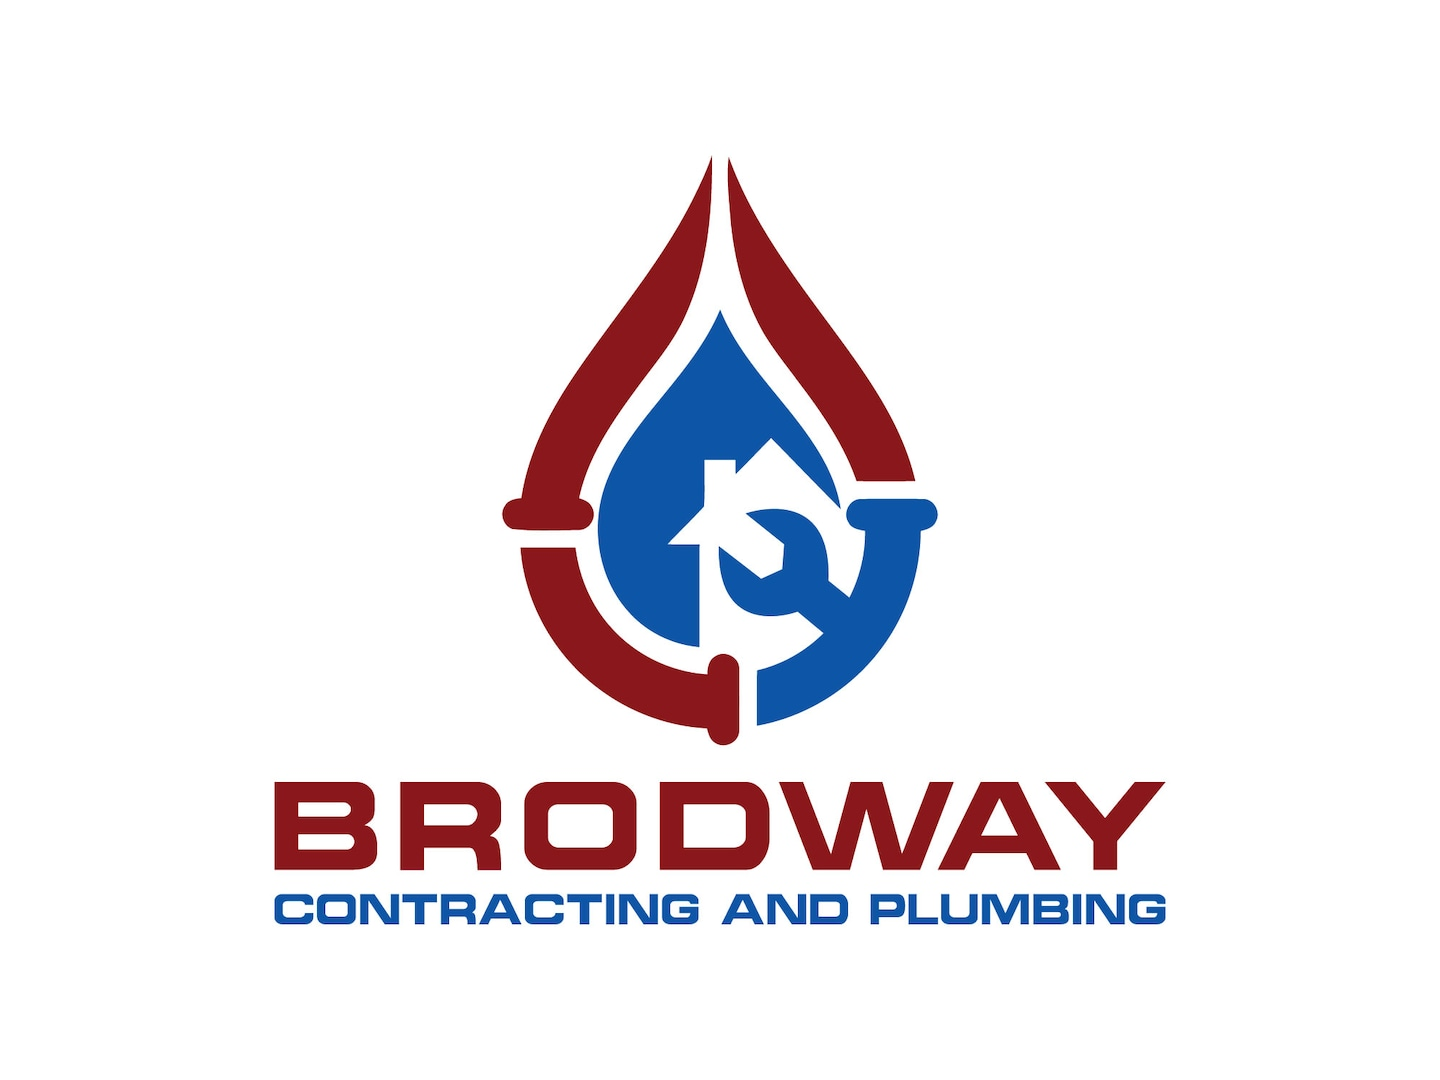 Brodway Contracting and Plumbing